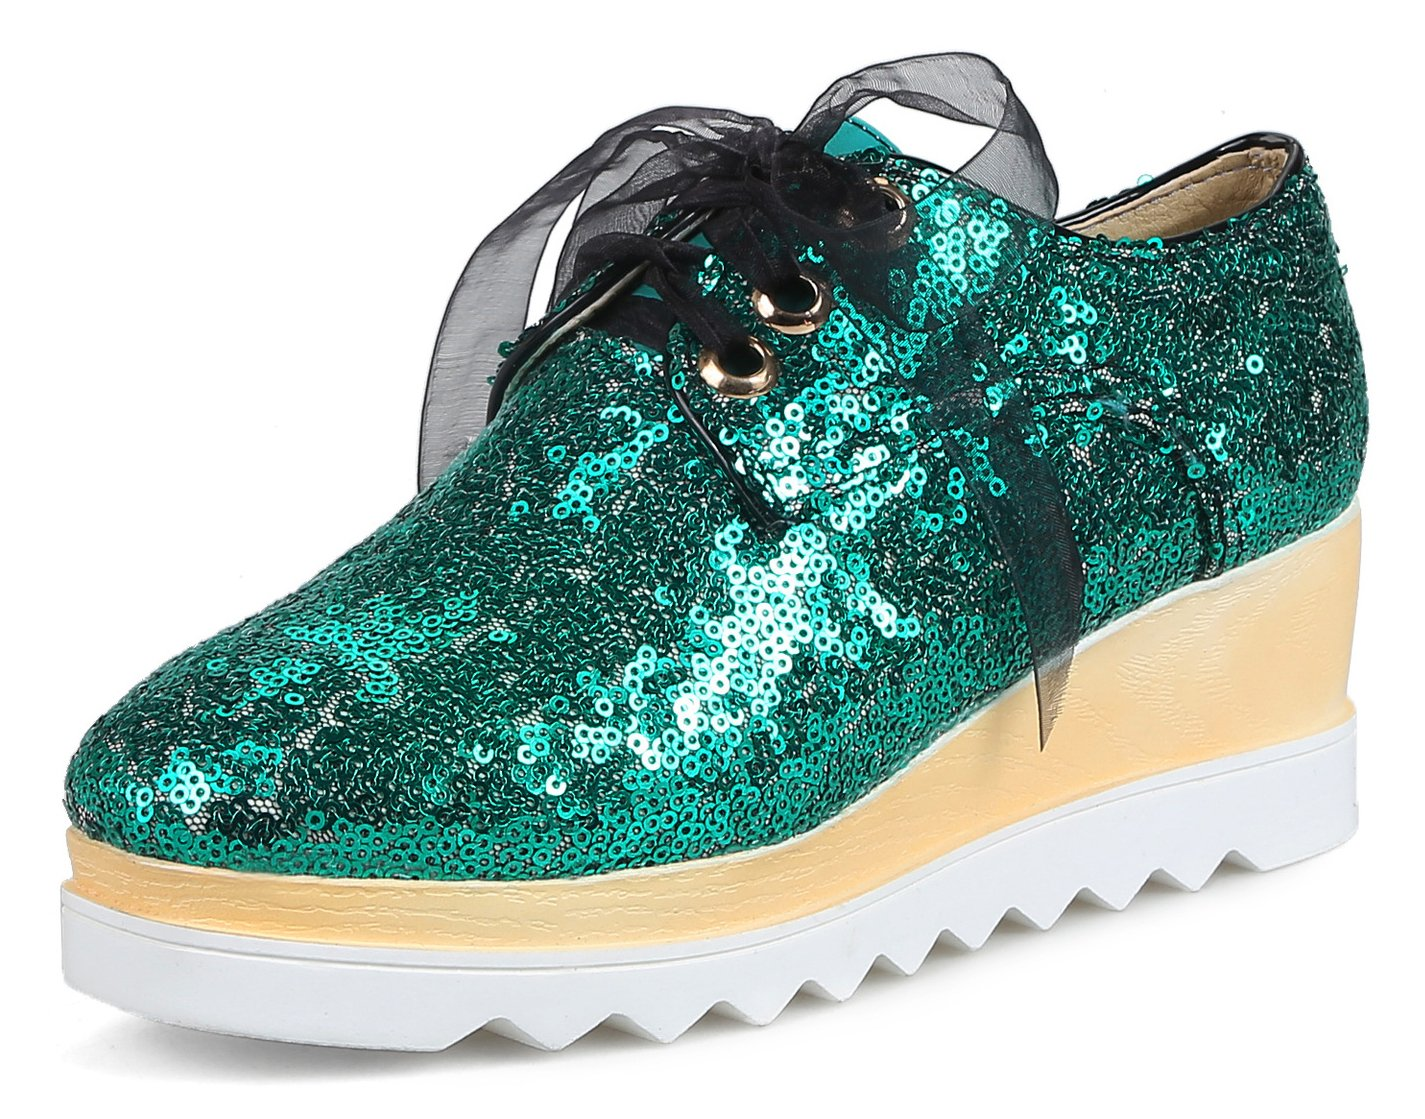 Aisun Women's Round Toe Wedge Sneakers - Lace up Platform Thick Sole - Casual Bling Sequin Mid Heel (Green, 7.5 B(M) US)